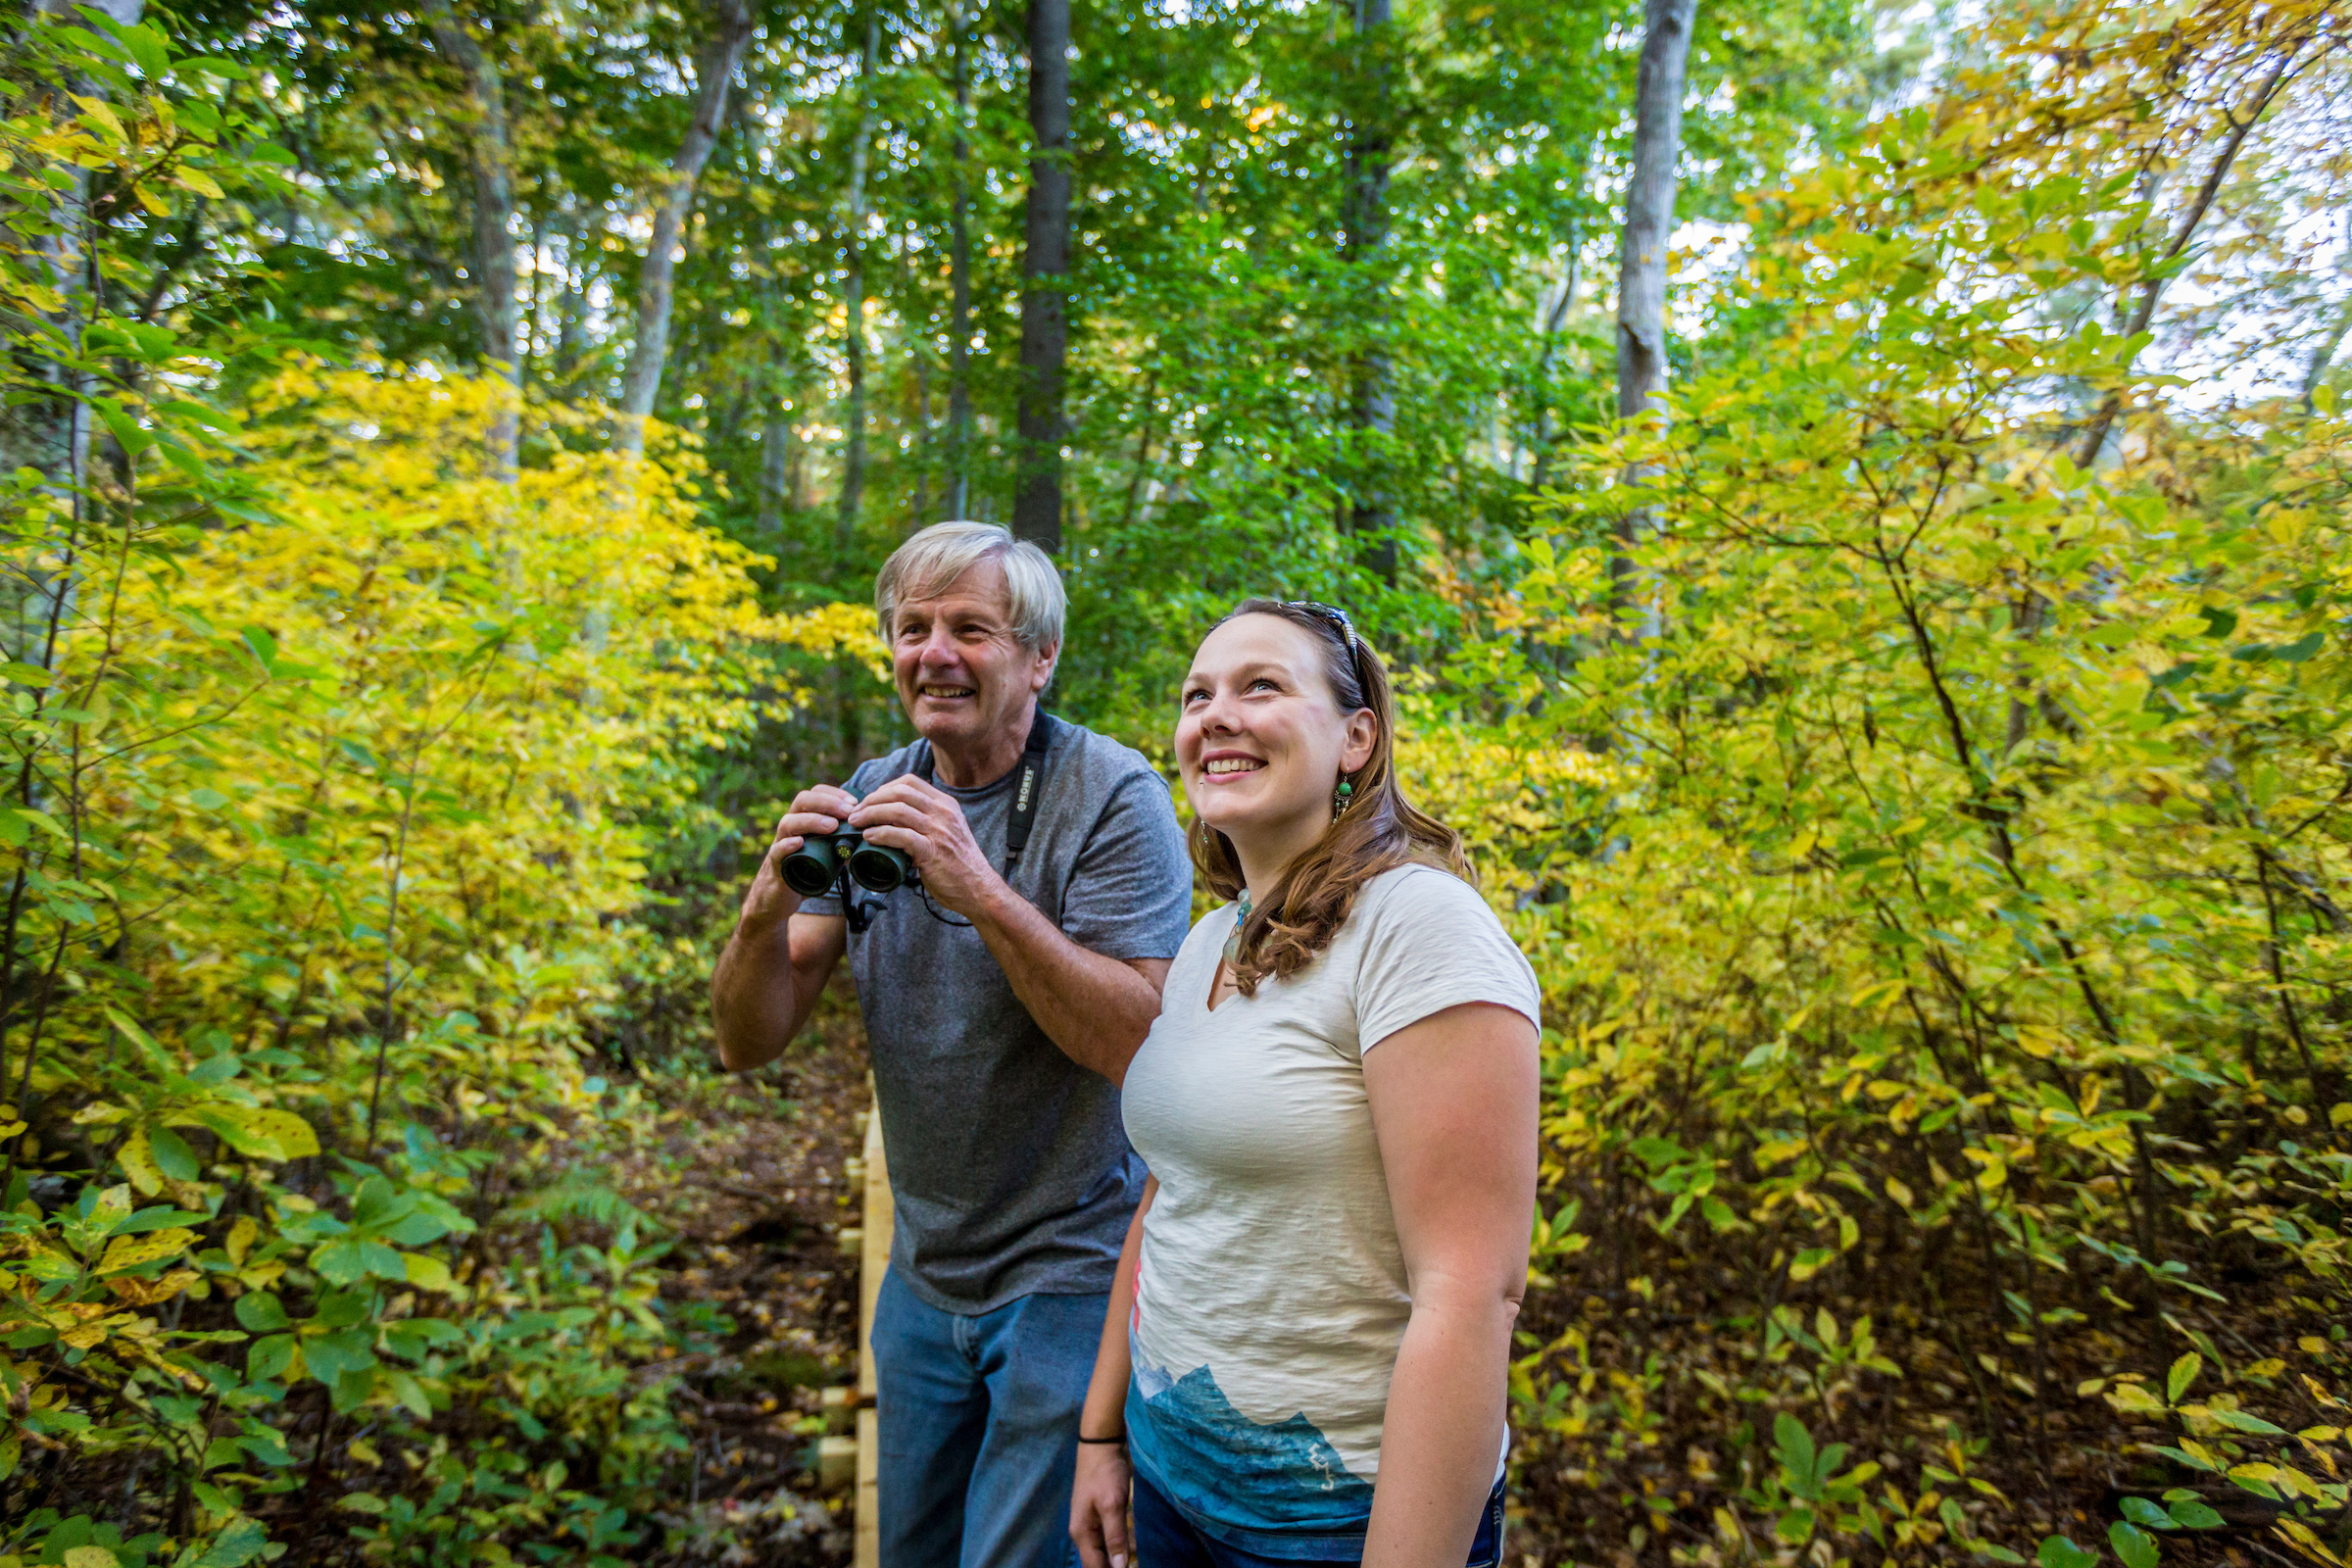 Mike Arsenault and Wildlands' Outreach and Education Manager Rachel Calderara check out the trees at Hoyt-Hall Preserve.